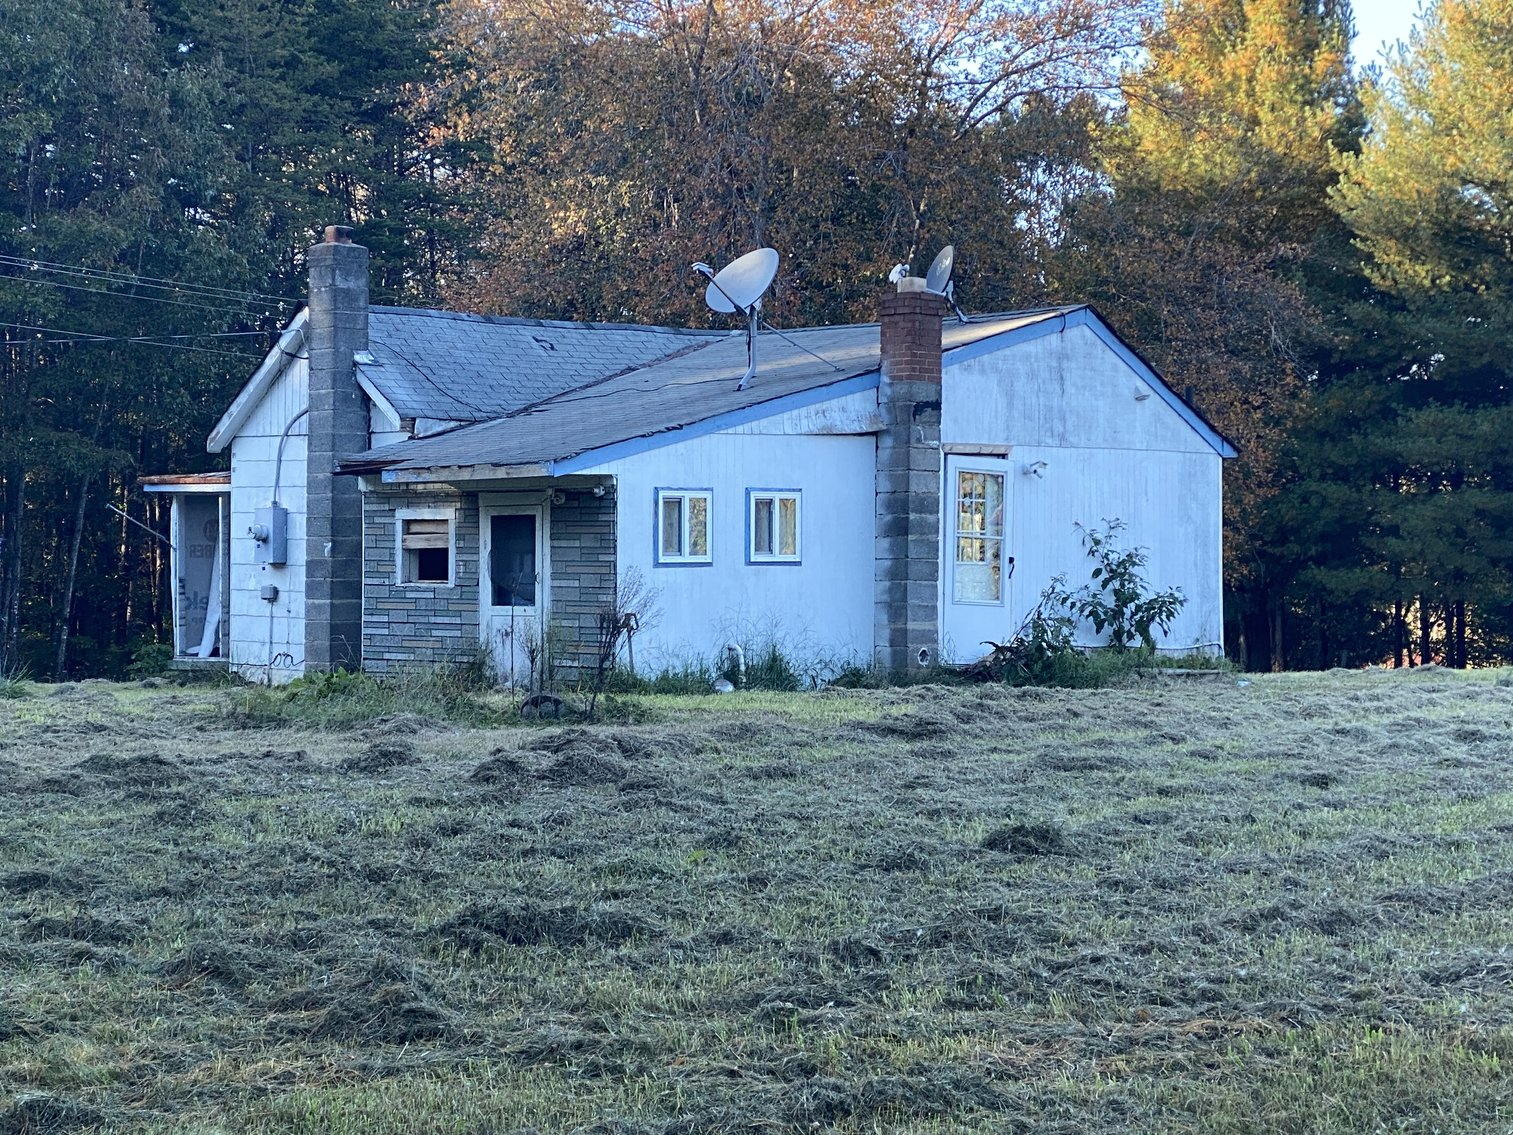 Image for 2.7 +/- Acre Building Lot w/2 BR Dwelling (In Need of Repair) in Orange County, VA --ONLINE ONLY BIDDING!!